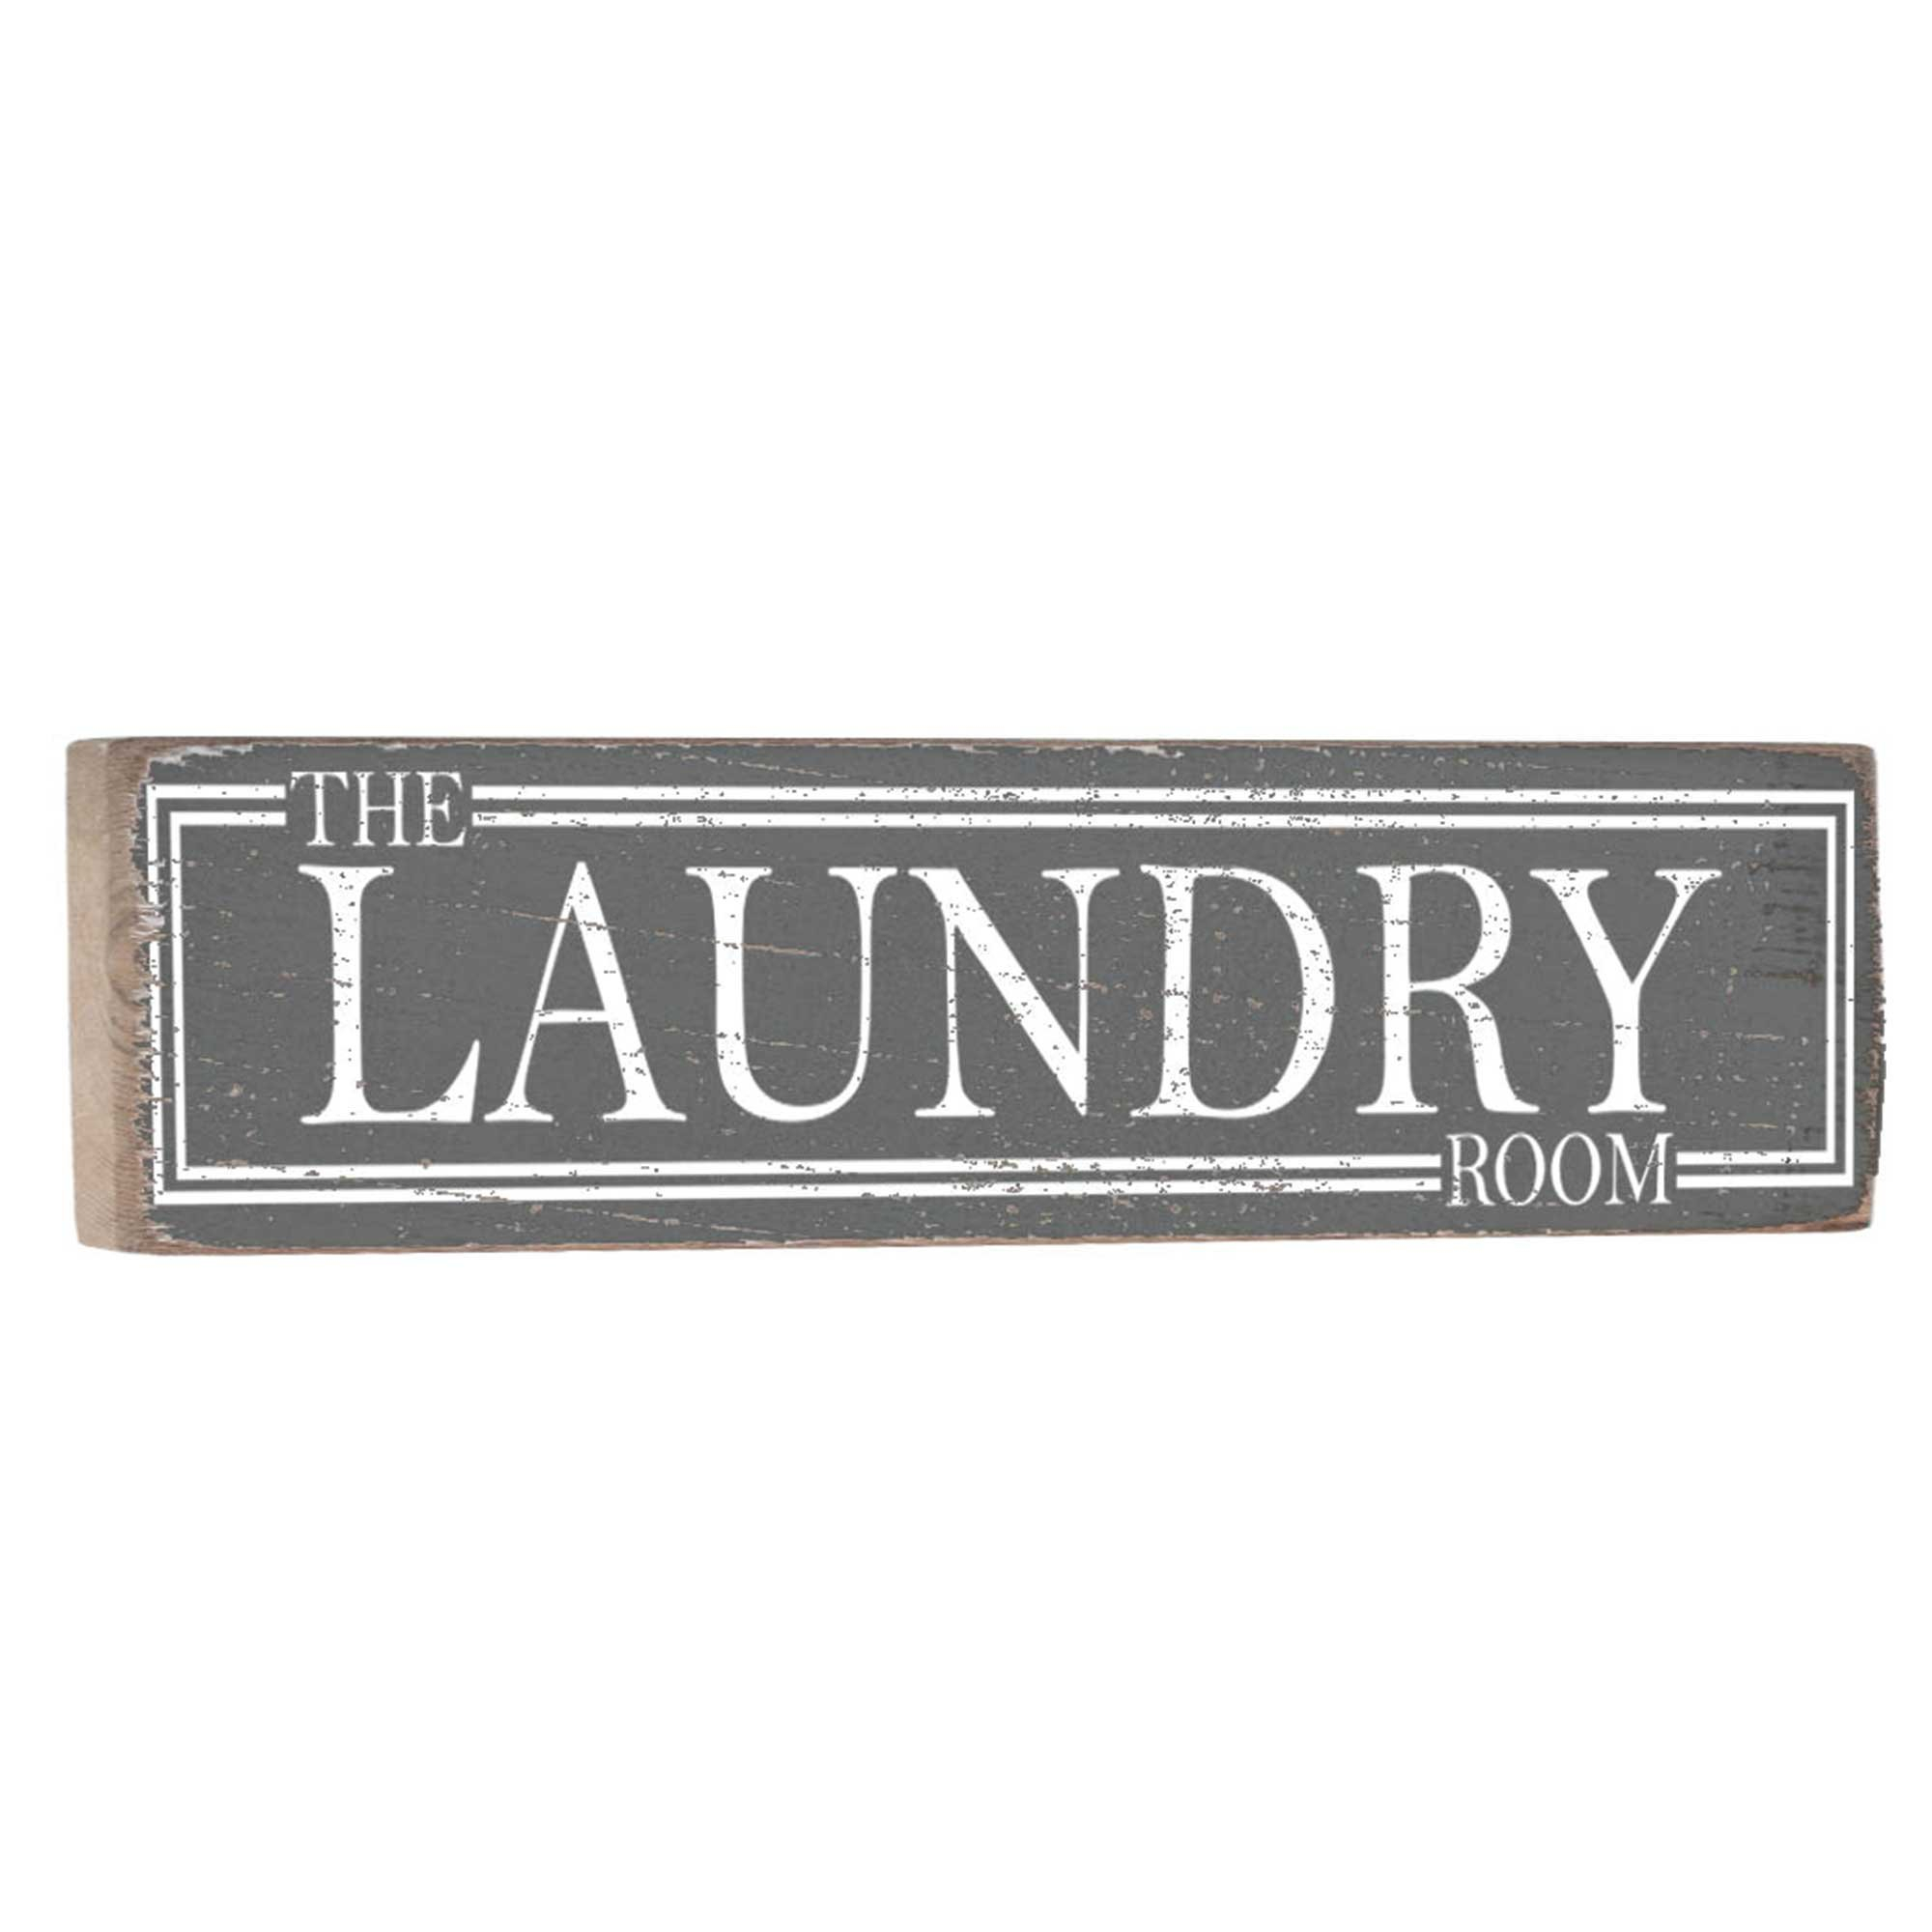 Most Recently Released The Laundry Room Wall Décor & Reviews (View 19 of 20)